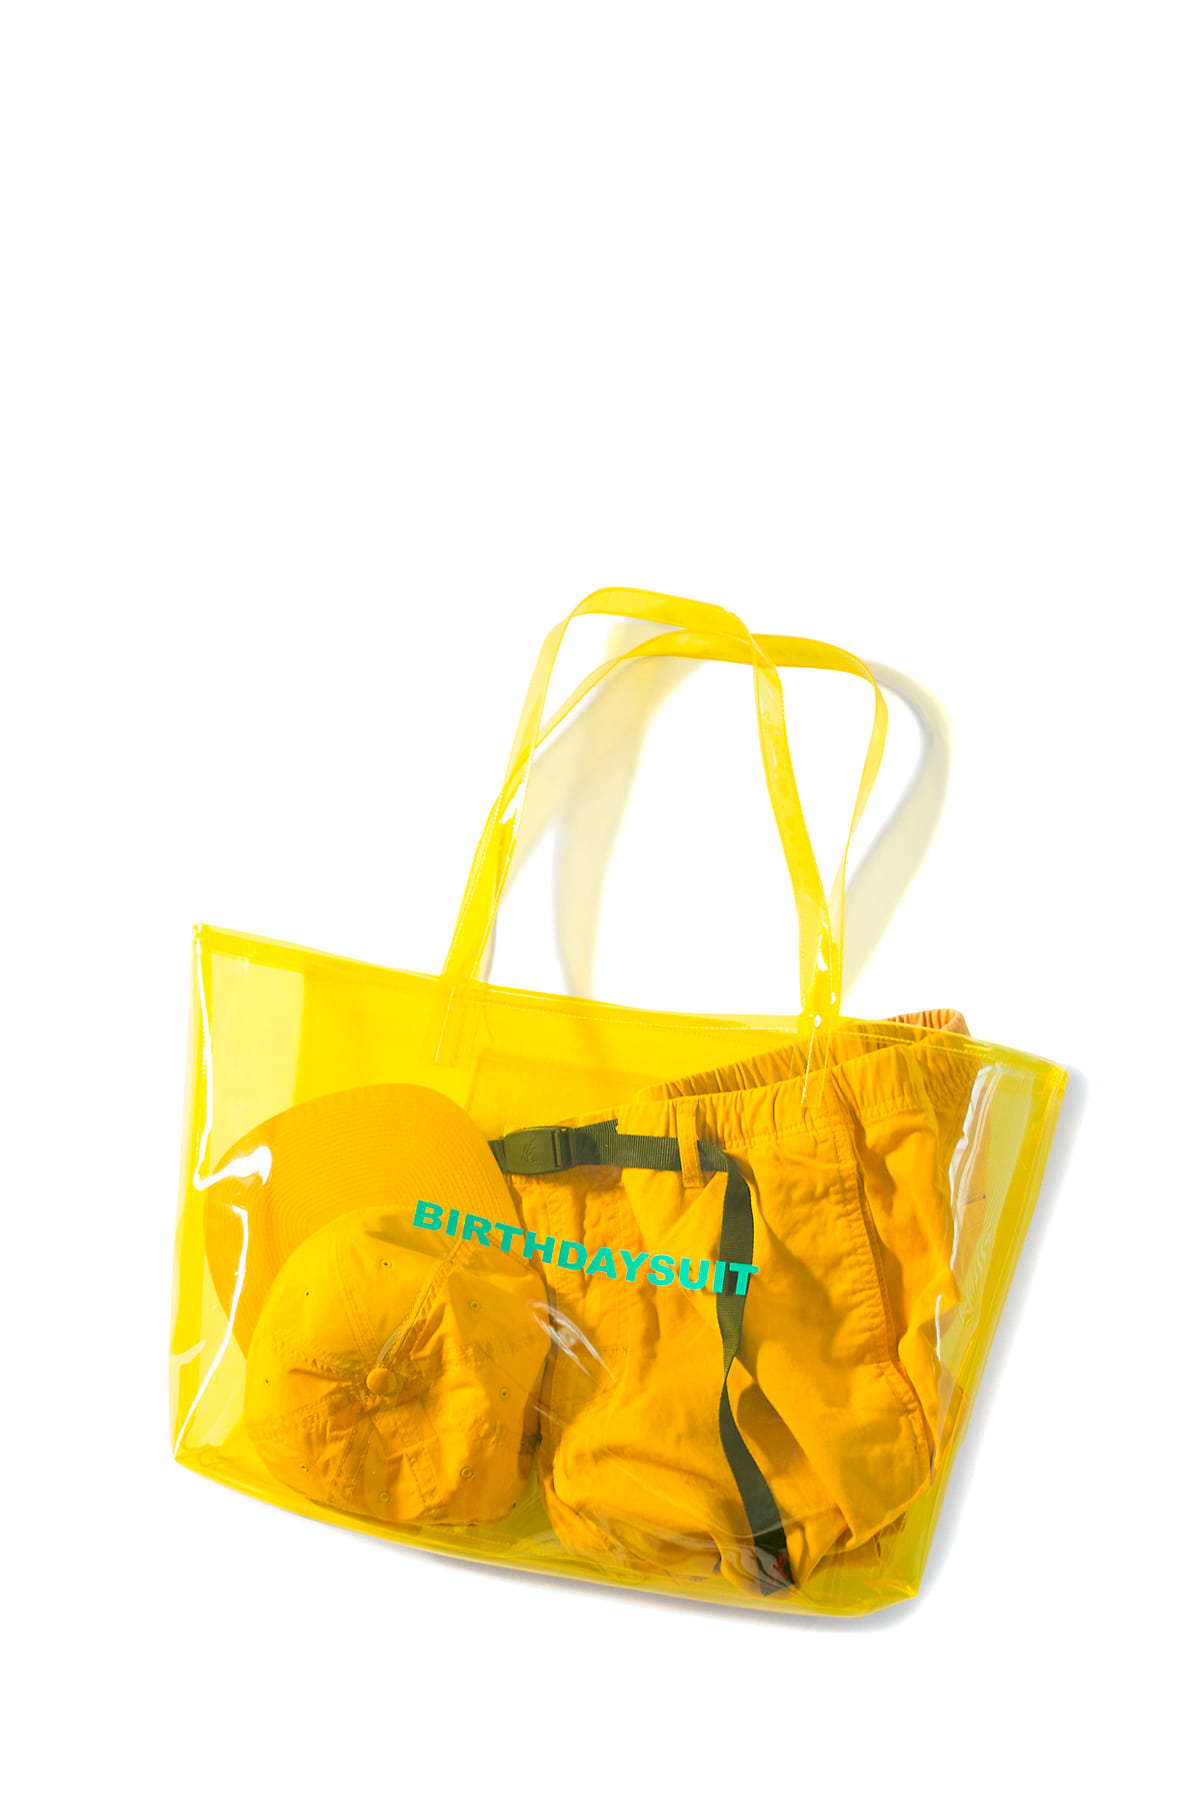 BIRTHDAYSUIT : LOGO PVC (Yellow)